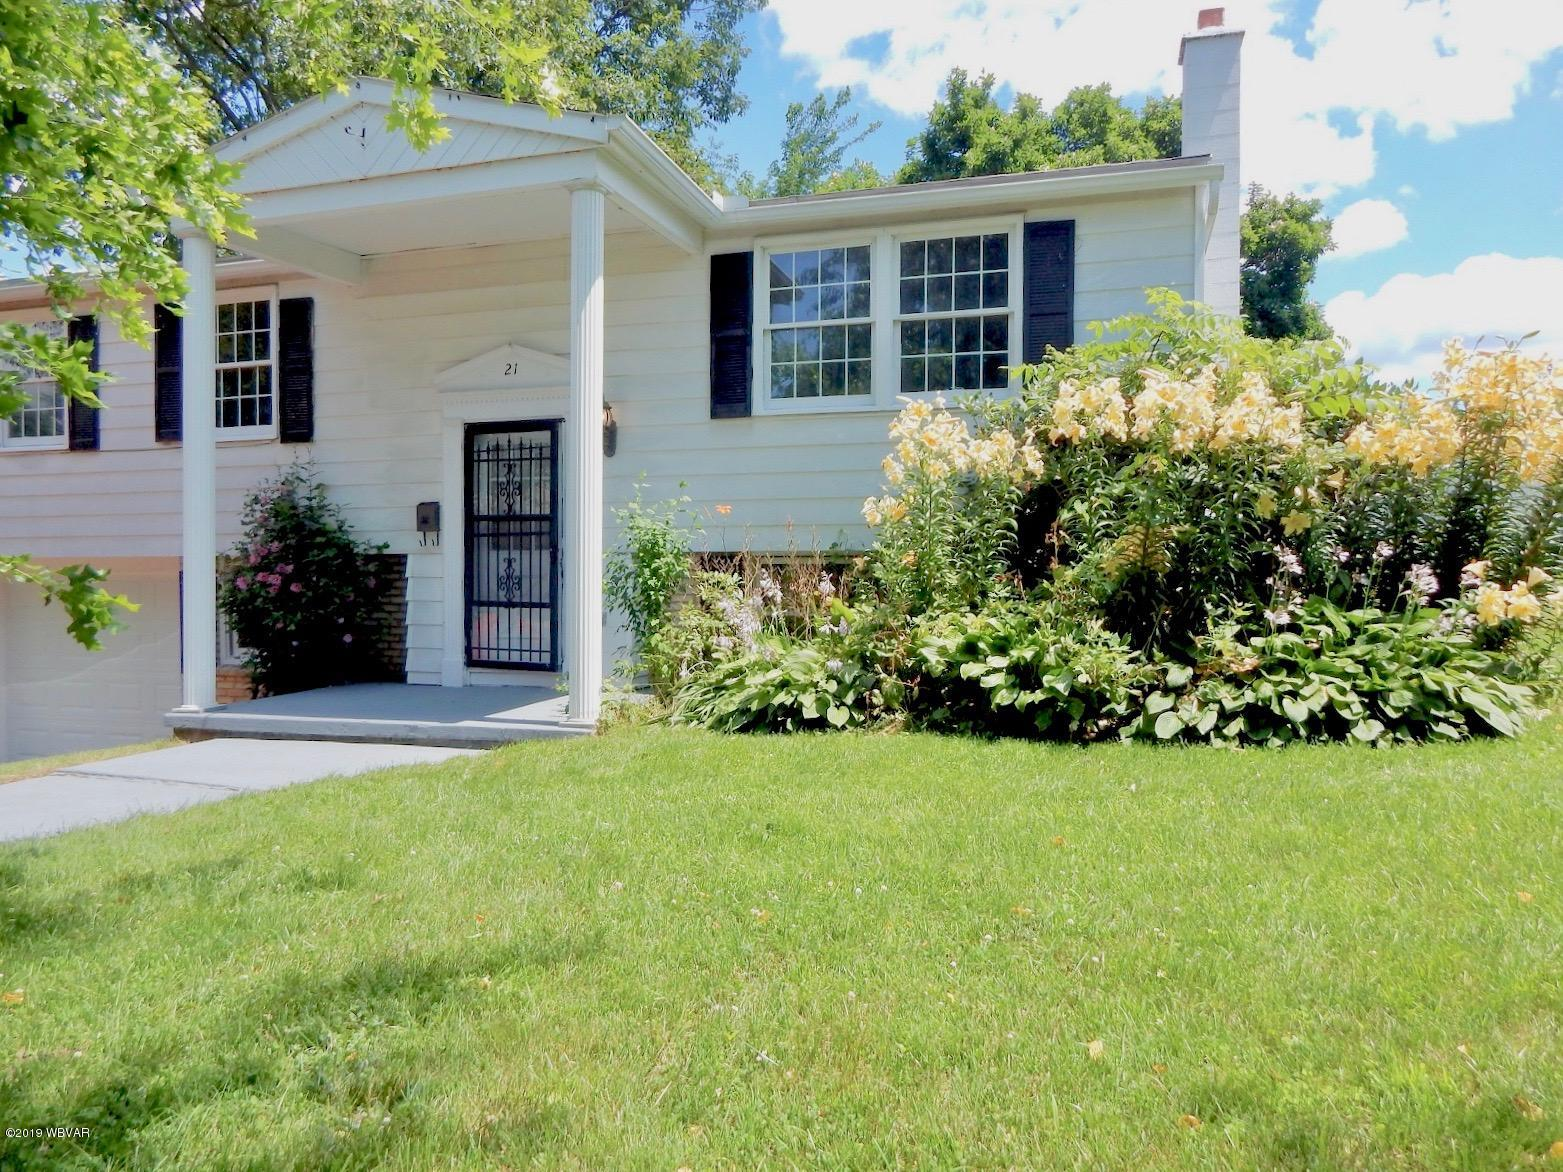 21 SYCAMORE LANE,Milton,PA 17847,2 Bedrooms Bedrooms,2 BathroomsBathrooms,Residential,SYCAMORE,WB-88007